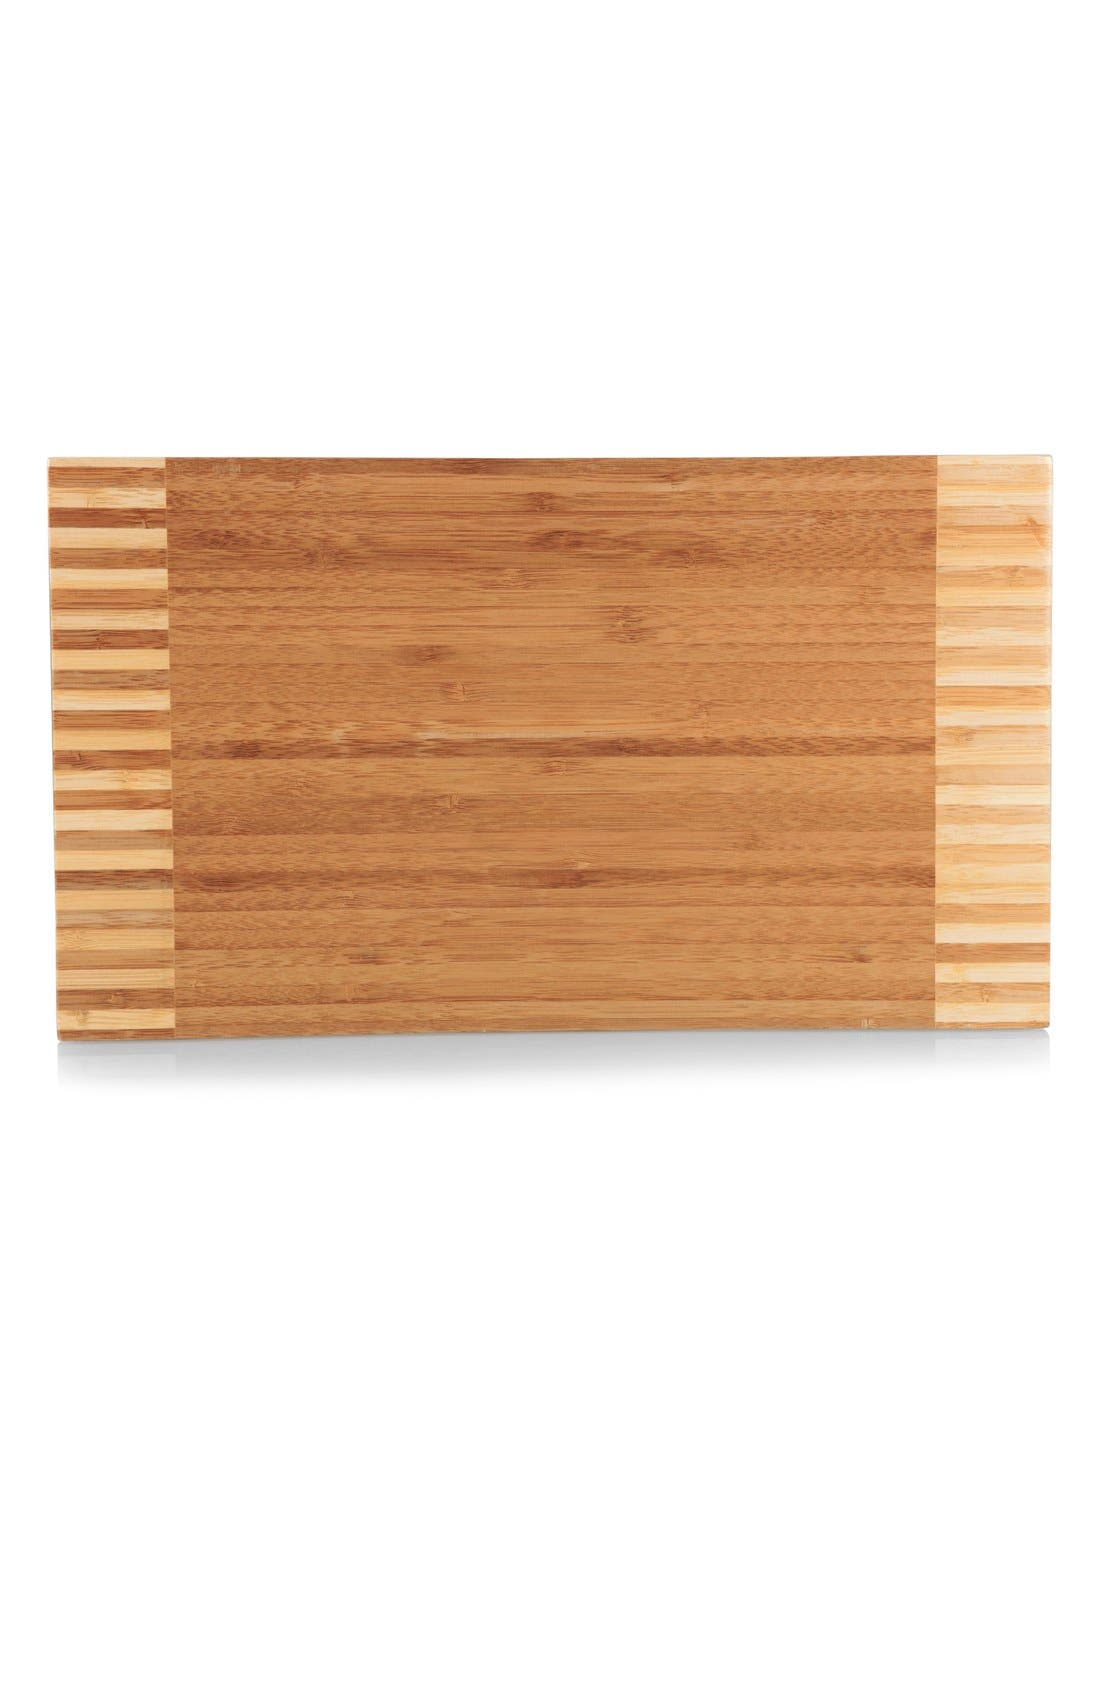 'Concavo' Cheese Board Set,                             Alternate thumbnail 2, color,                             Brown